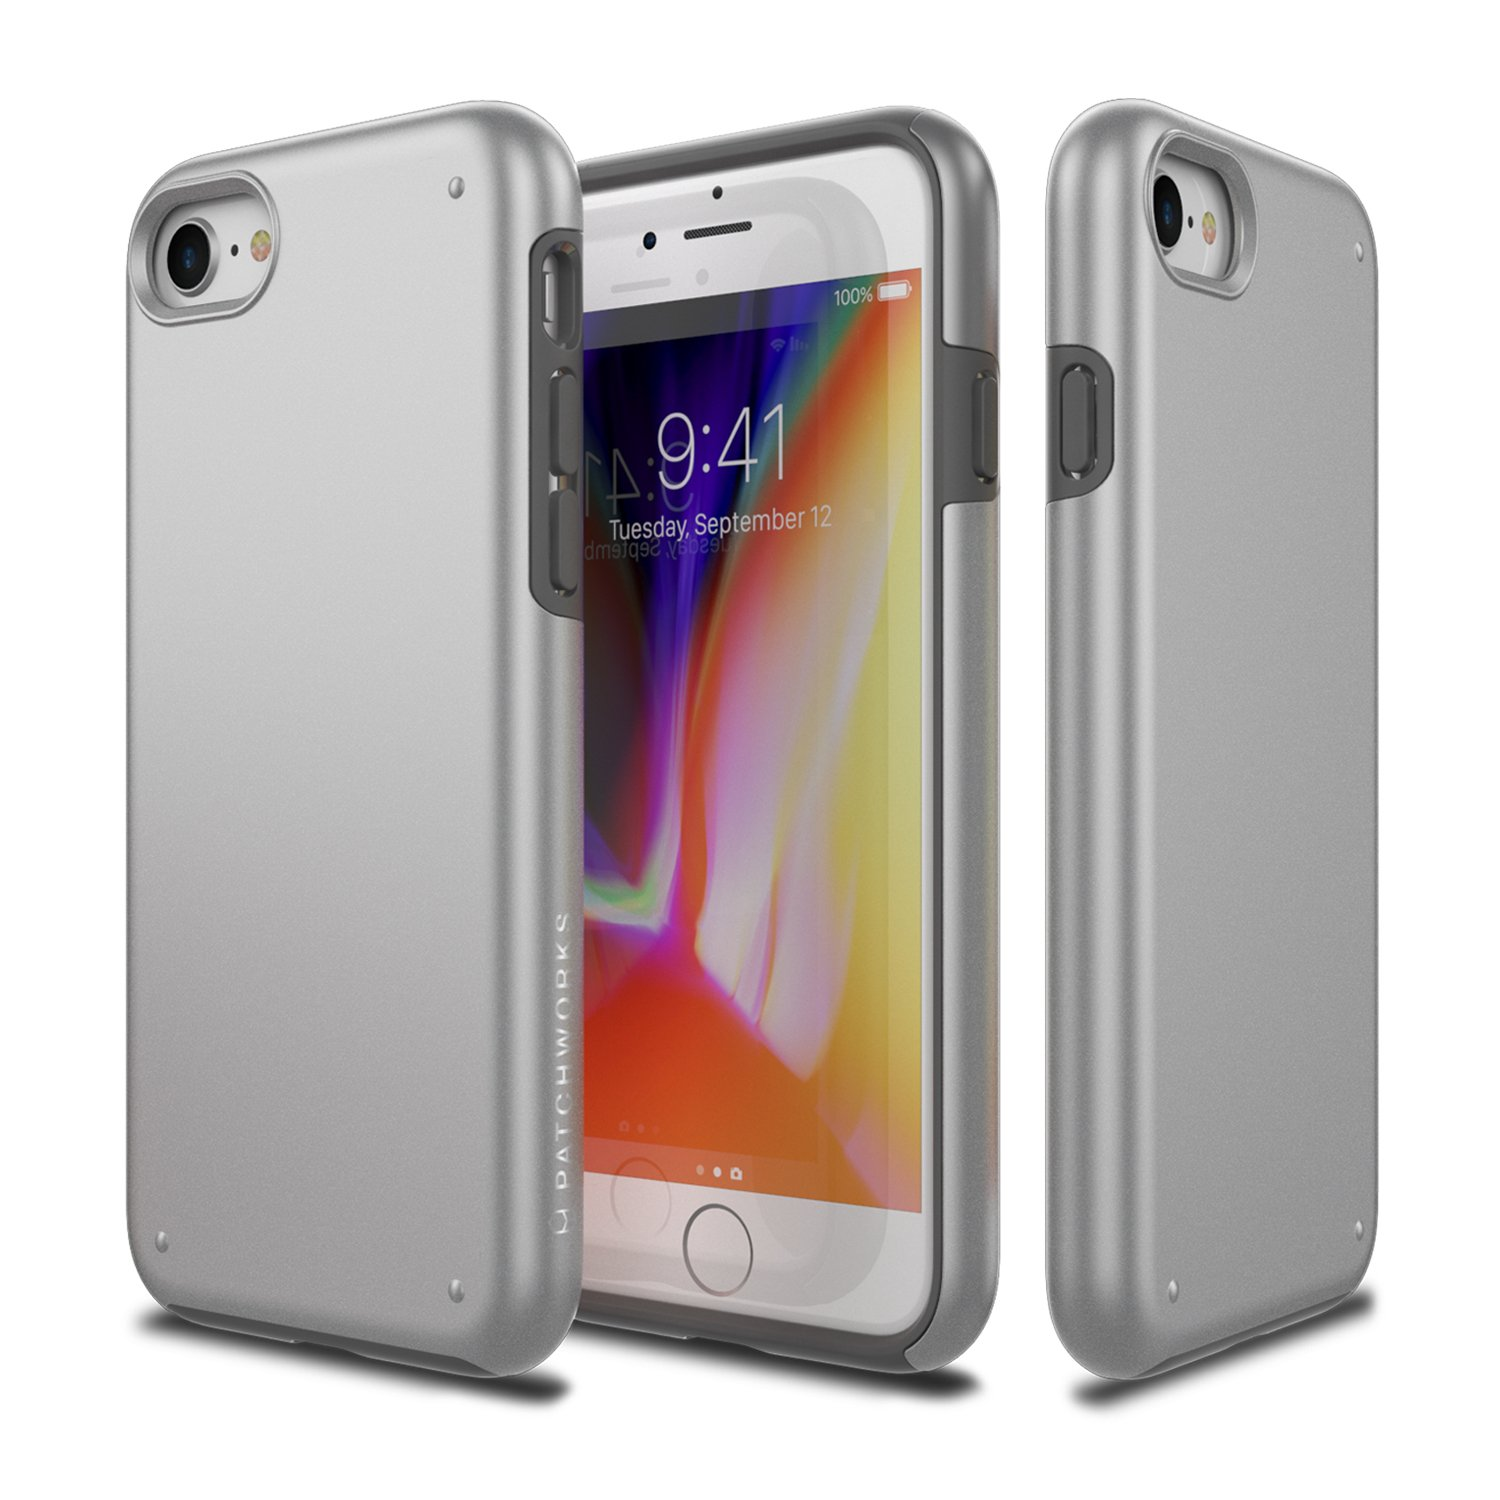 iPhone 8 Case, Patchworks [Chroma Series] Hybrid Soft Inner TPU Hard Matte Finish PC Back Cover Military Grade Drop Tested Dual Layer Case for iPhone 8 / iPhone 7 - Silver